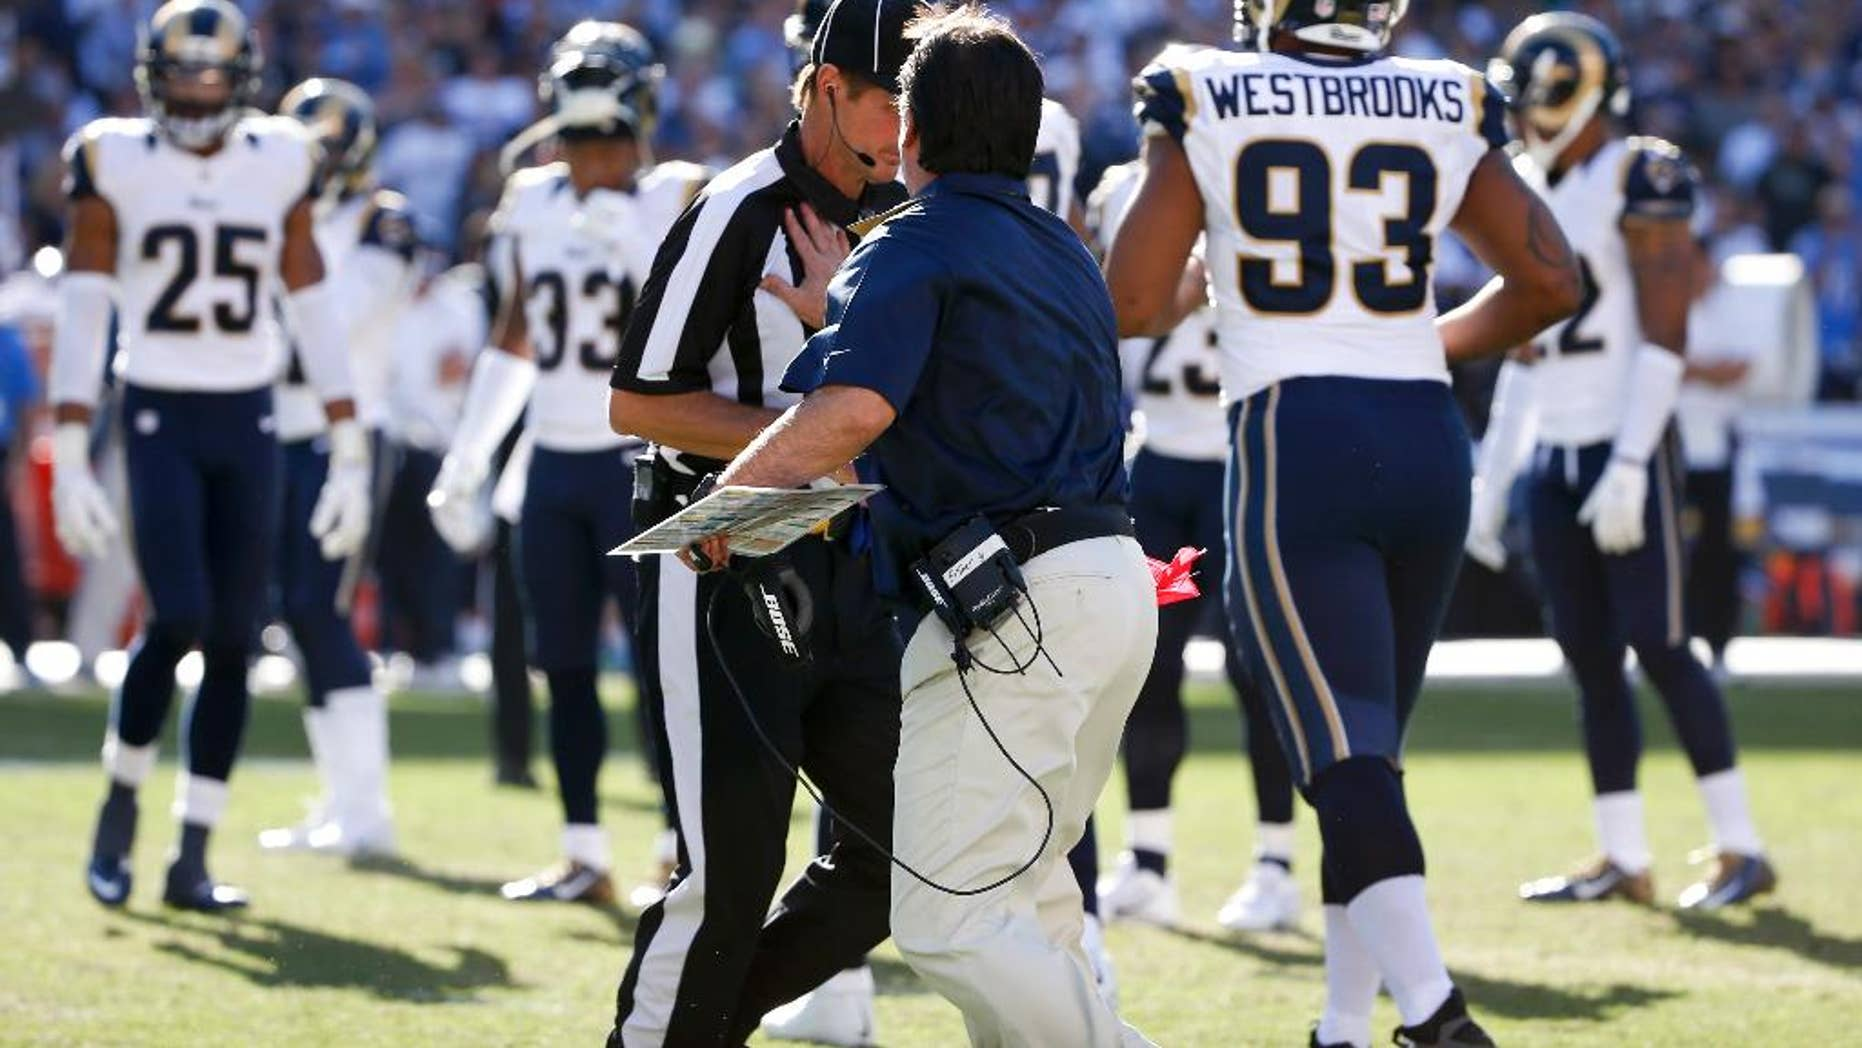 St. Louis Rams head coach Jeff Fisher puts his hand on a referee during the first half of an NFL football game against the San Diego Chargers, Sunday, Nov. 23, 2014, in San Diego. (AP Photo/Lenny Ignelzi)